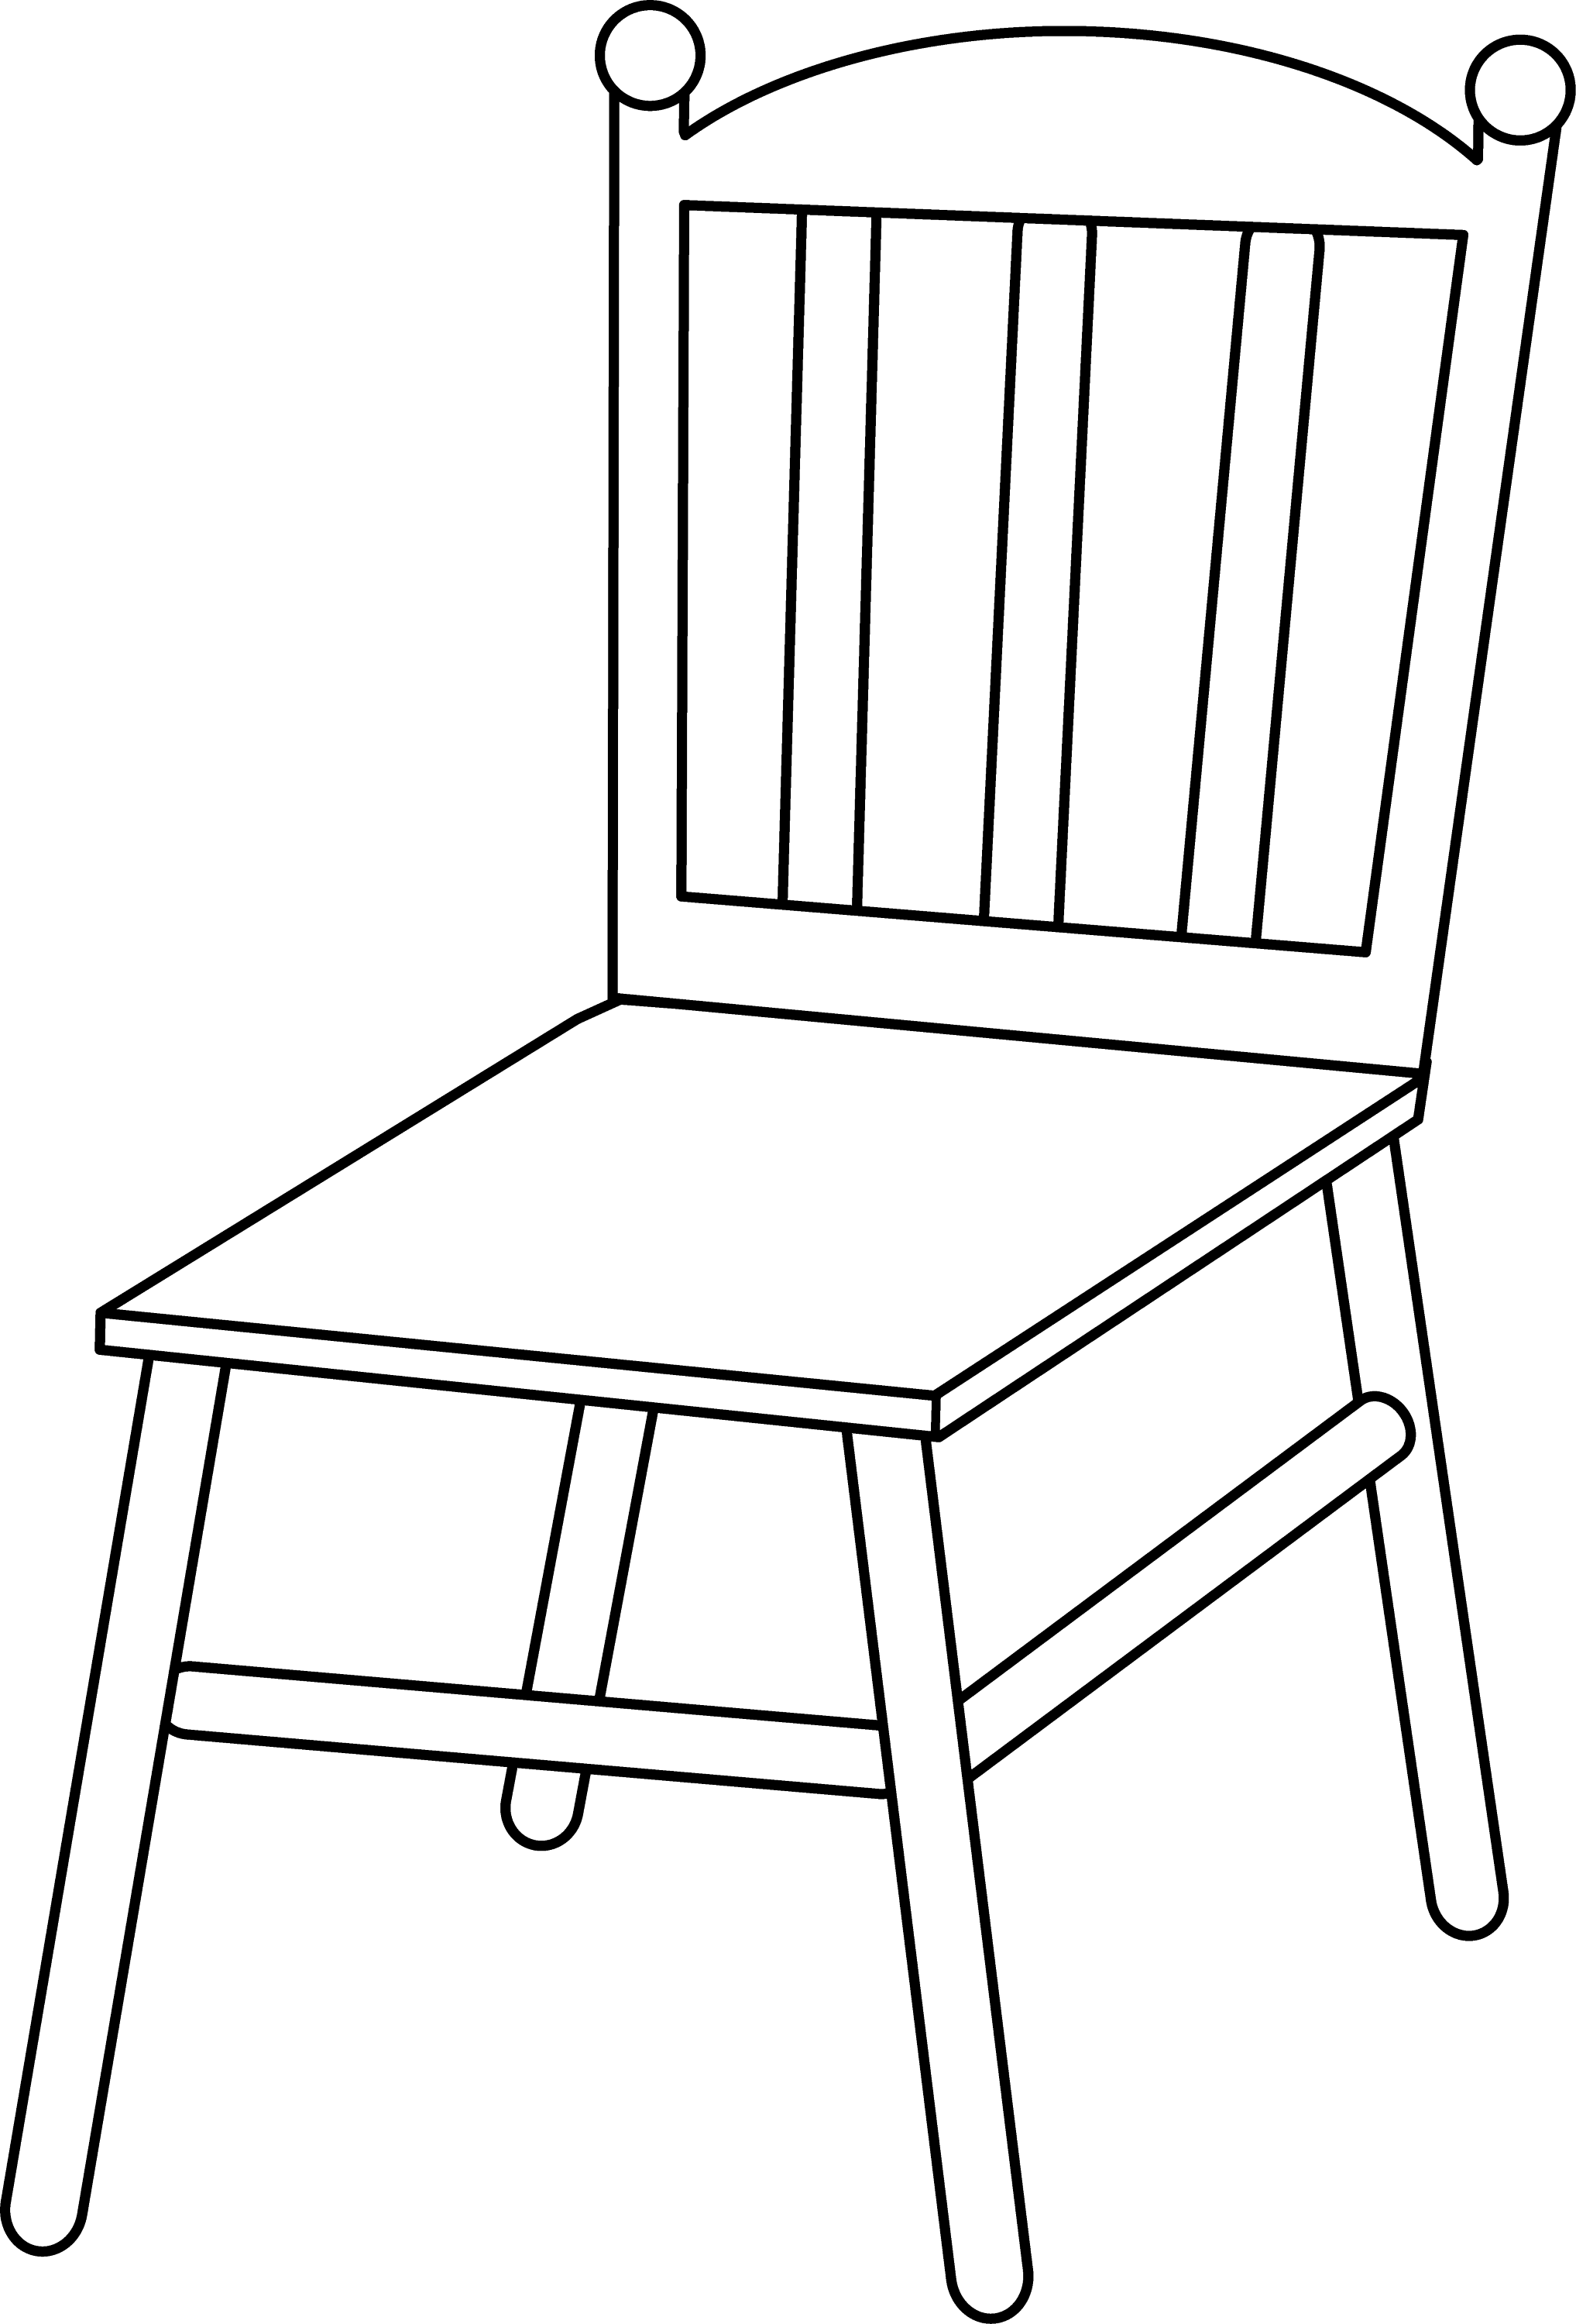 drawing chair how to draw a chair drawingforallnet chair drawing